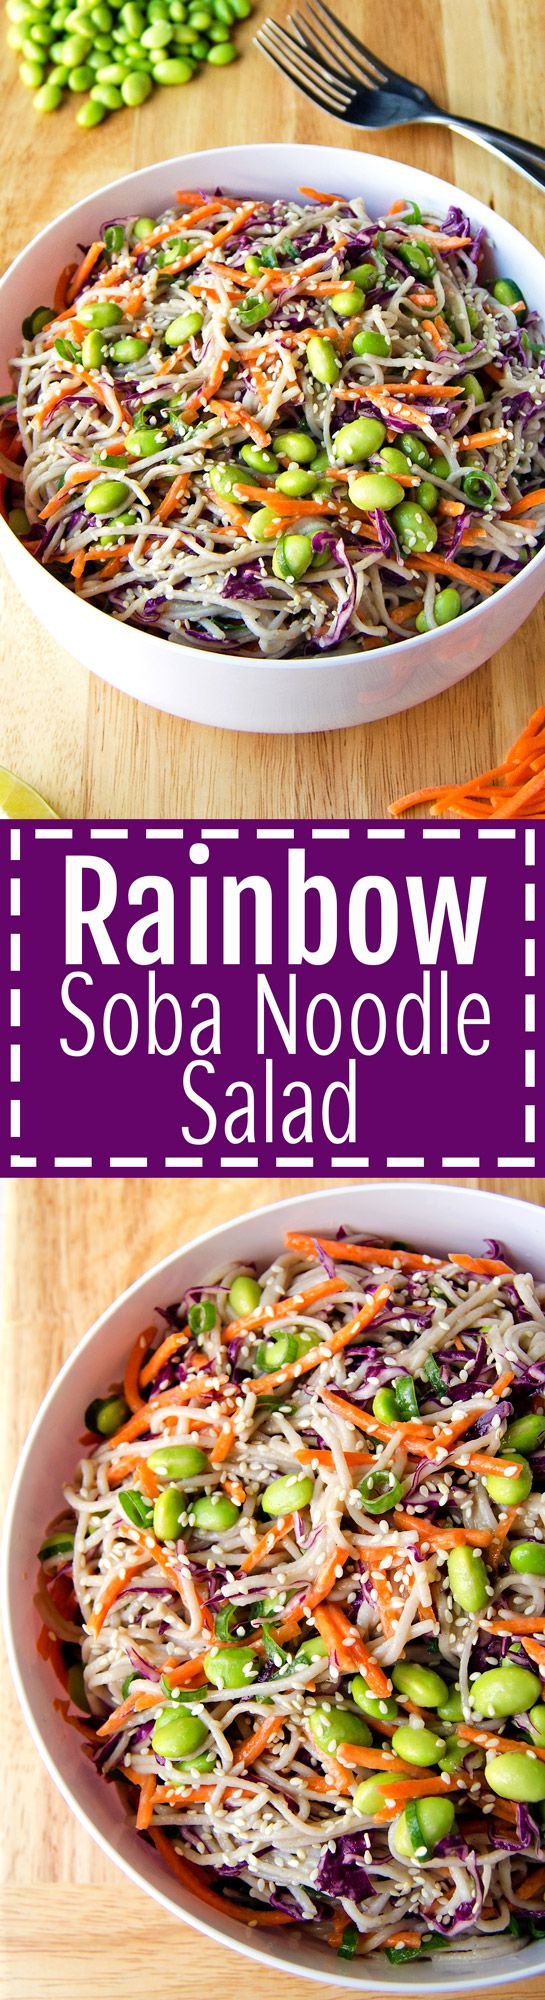 Salad Recipe: Rainbow Soba Noodle Salad #vegan #recipes #healthy #plantbased #whatveganseat #glutenfree #salad